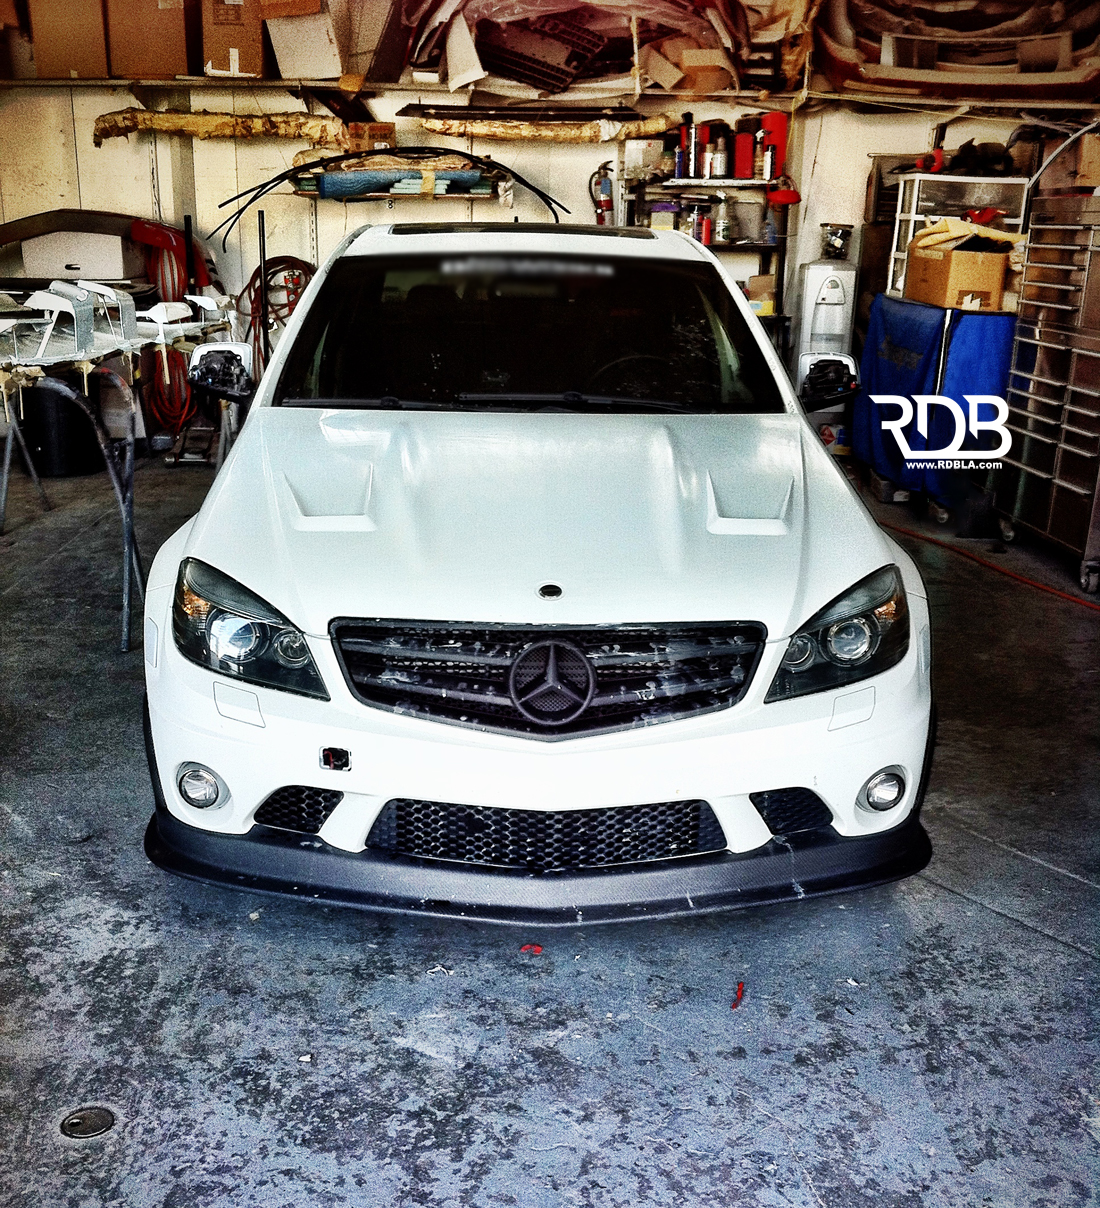 RBD LA Mercedes C63 AMG Widebody Build - autoevolution